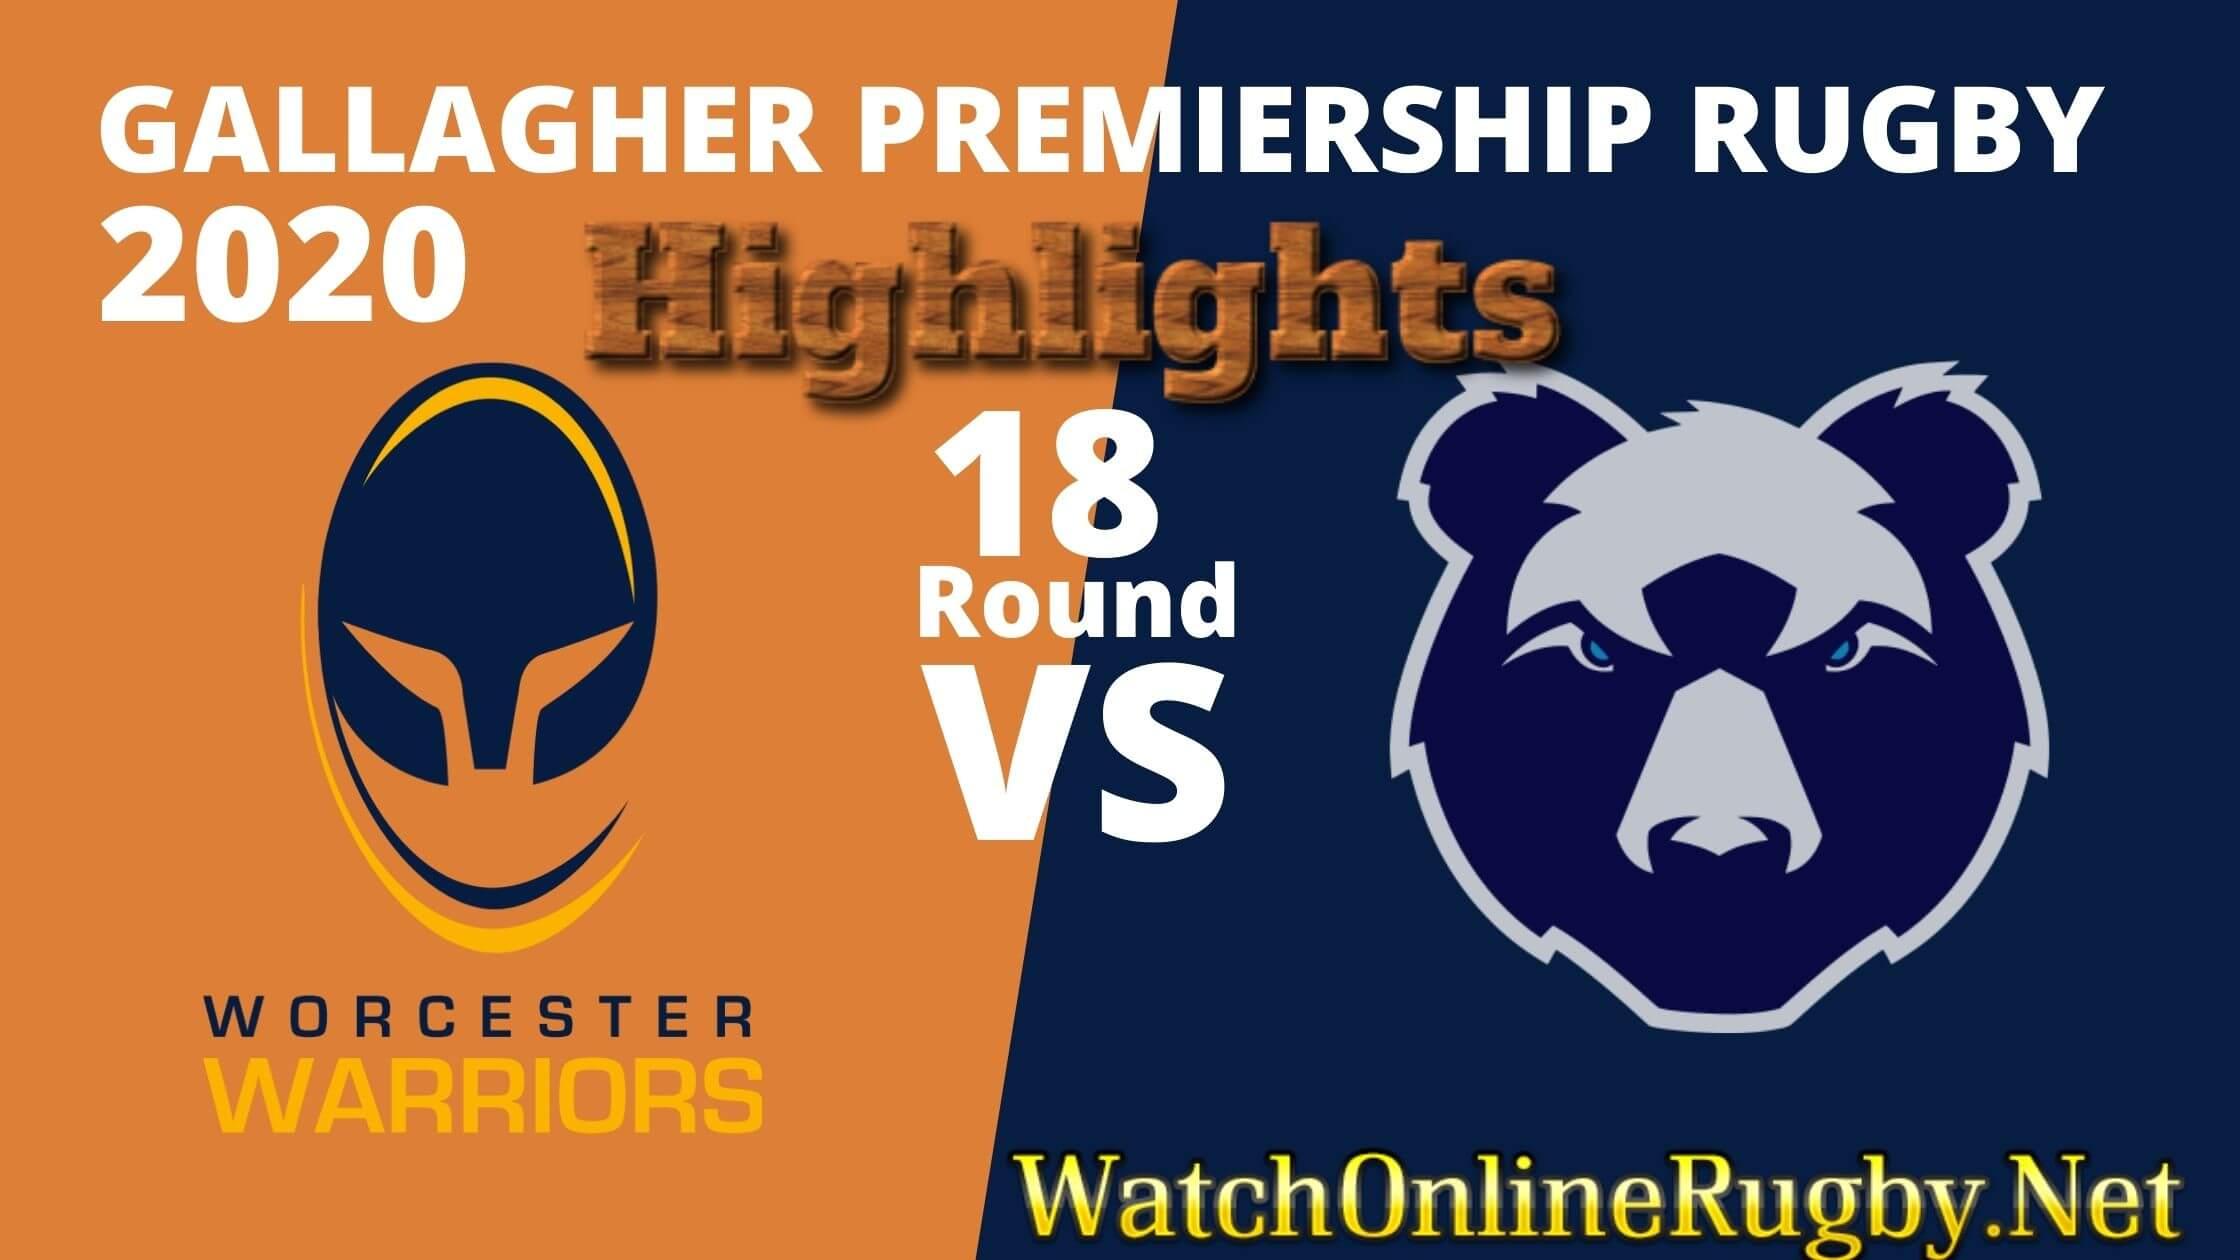 Warriors Vs Bristol Bear Highlights 2020 Rd 18